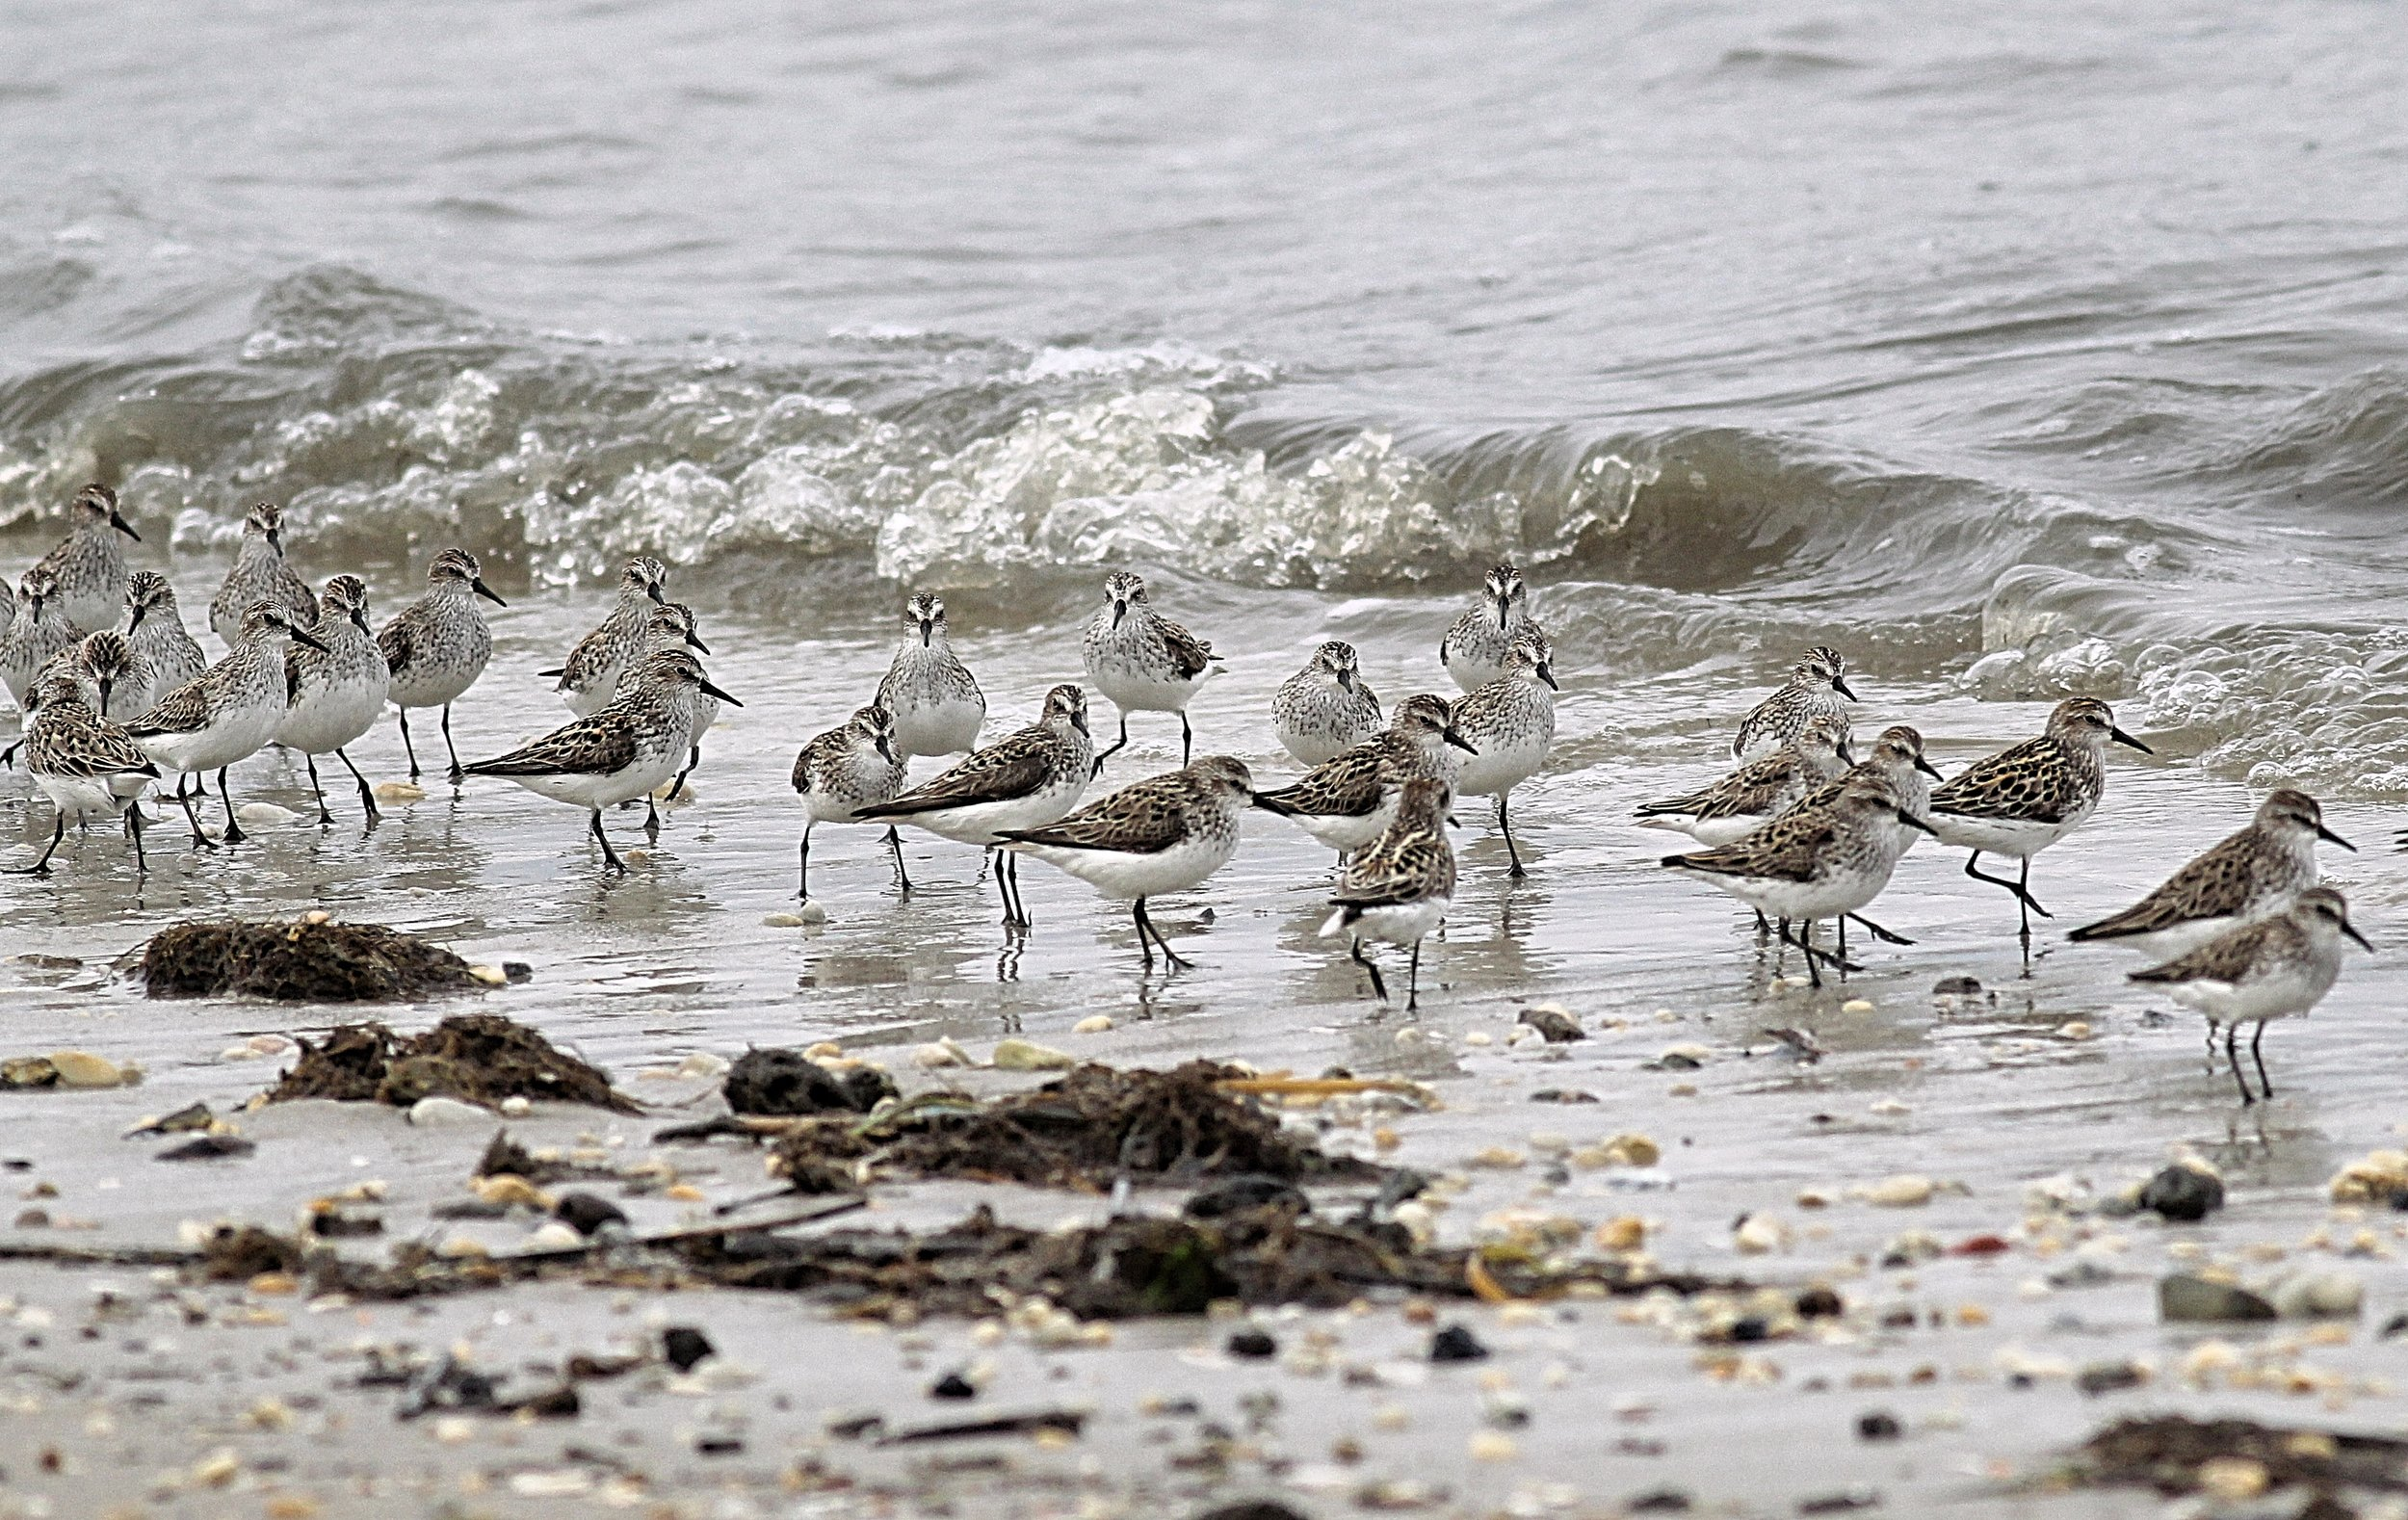 Migrating Semipalmated Sandpipers in Delaware Bay, NJ